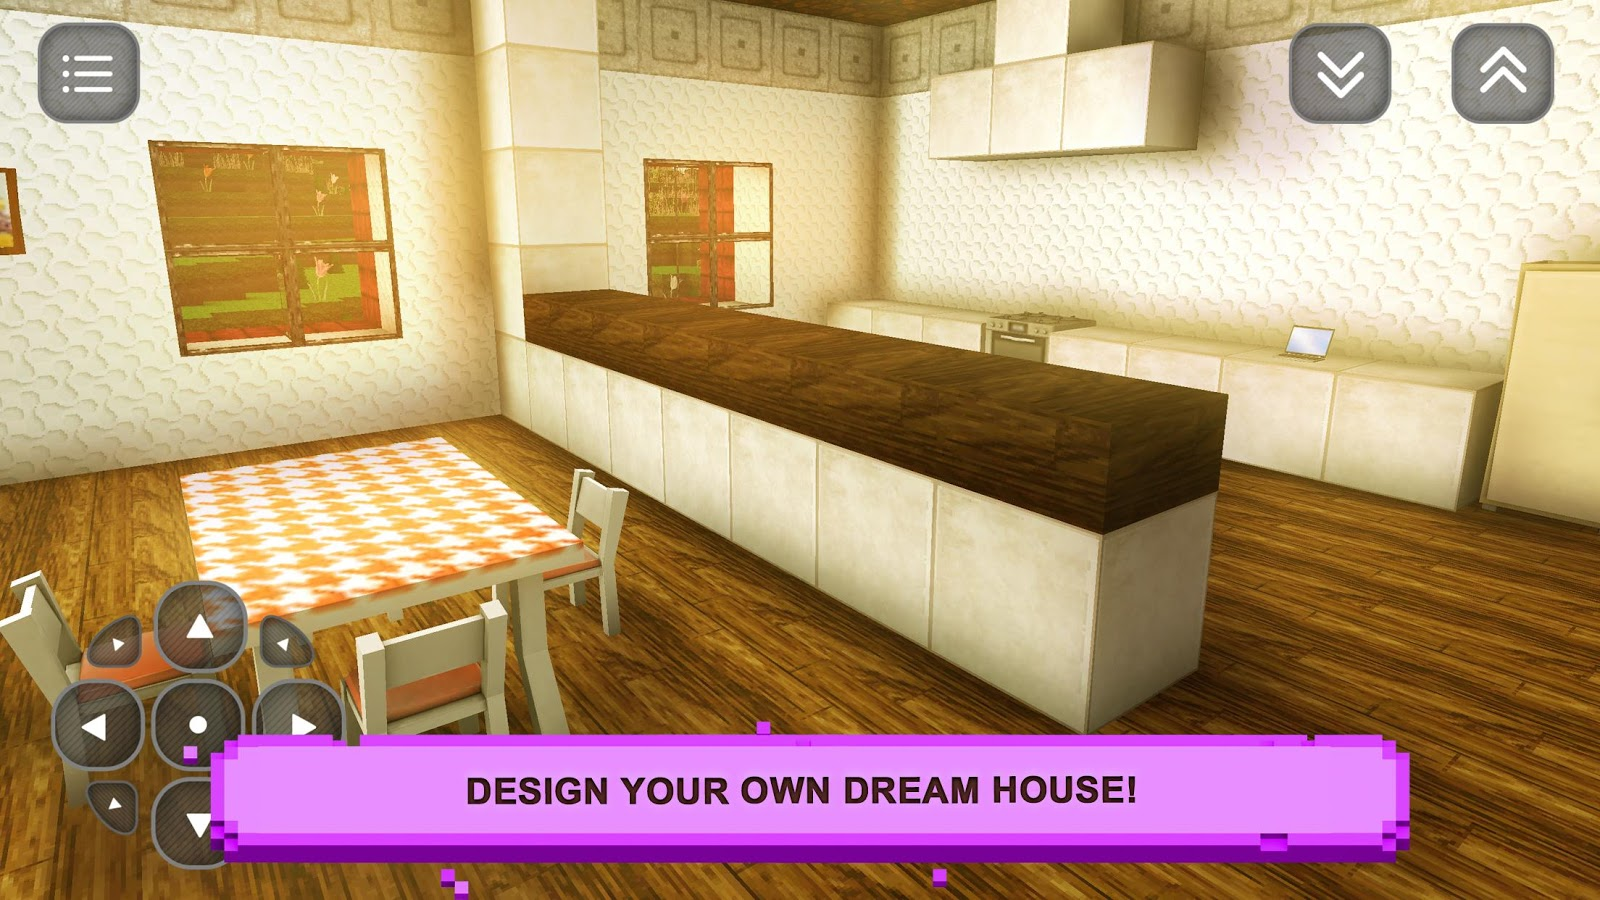 design your dream house game sim craft home design android apps on play 352